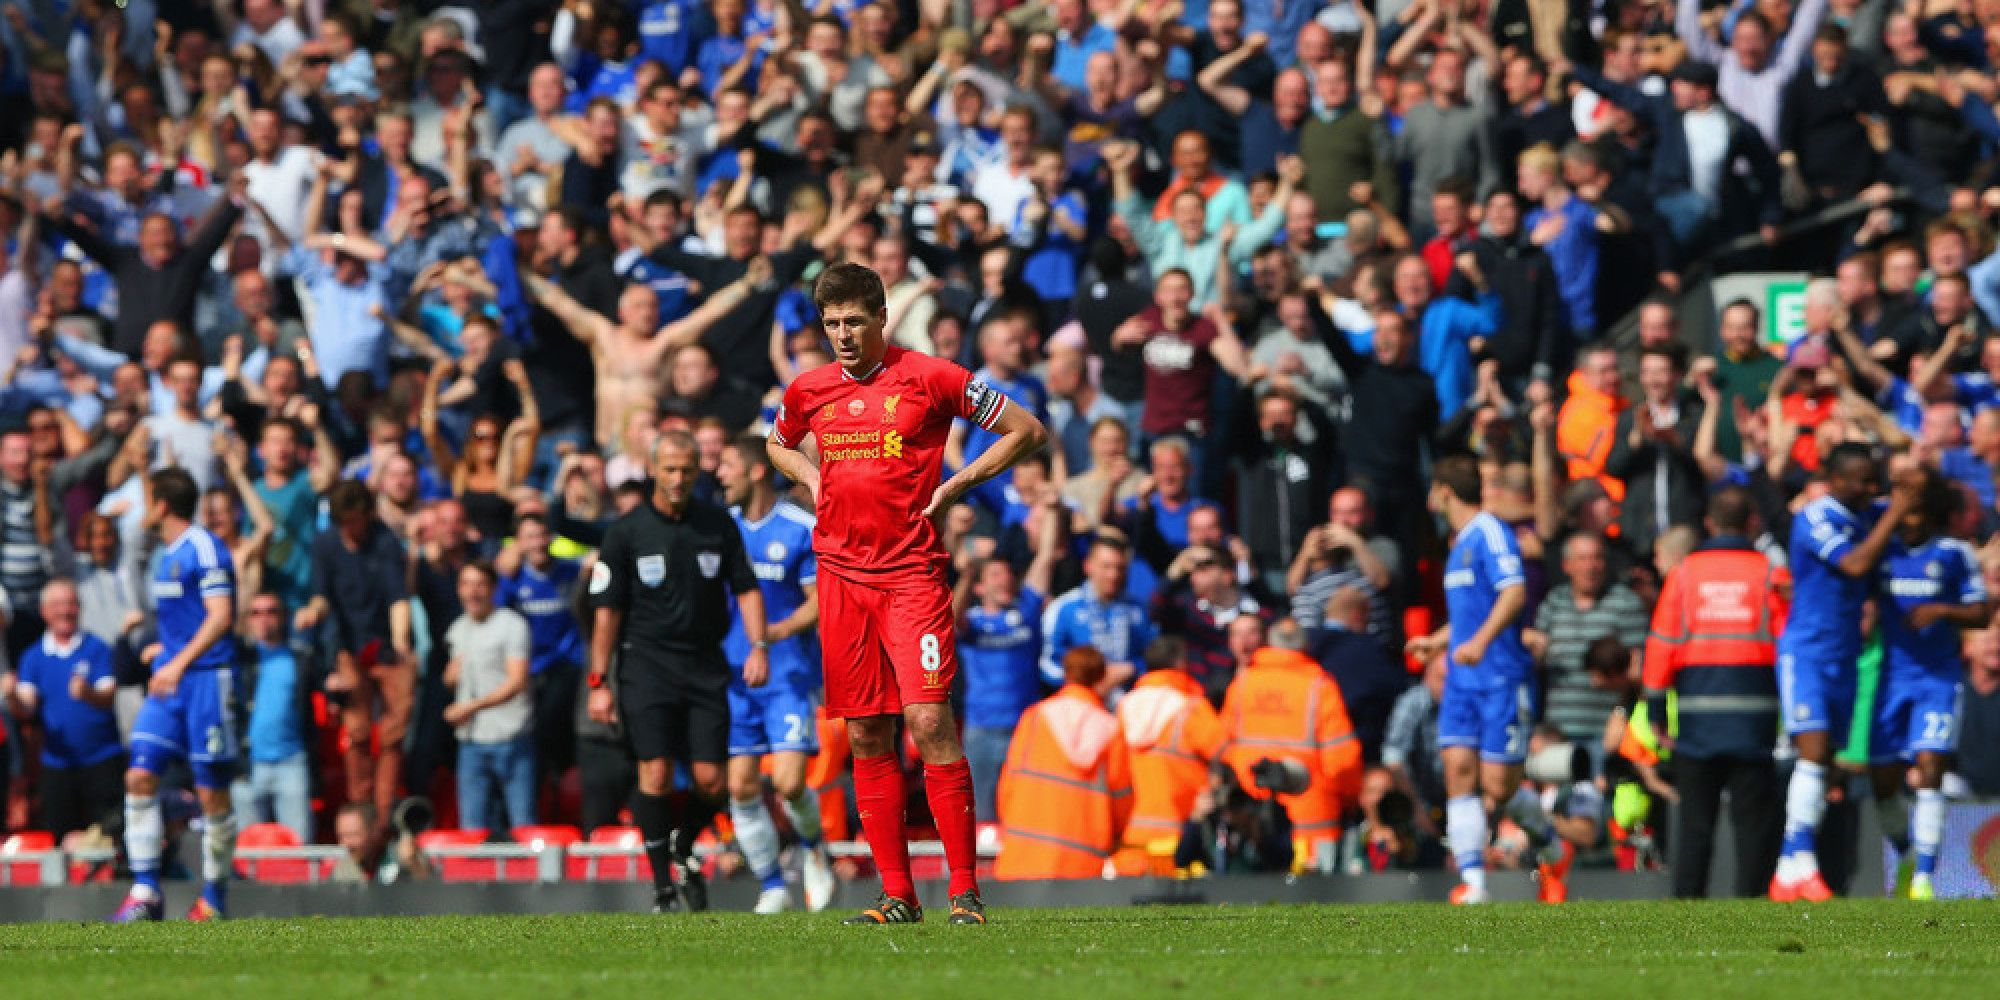 LIVERPOOL, ENGLAND - APRIL 27:  A dejected Steven Gerrard of Liverpool looks on as the Chelsea fans celebrate after Willian of Chelsea scored their second goal during the Barclays Premier League match between Liverpool and Chelsea at Anfield on April 27, 2014 in Liverpool, England.  (Photo by Clive Brunskill/Getty Images)